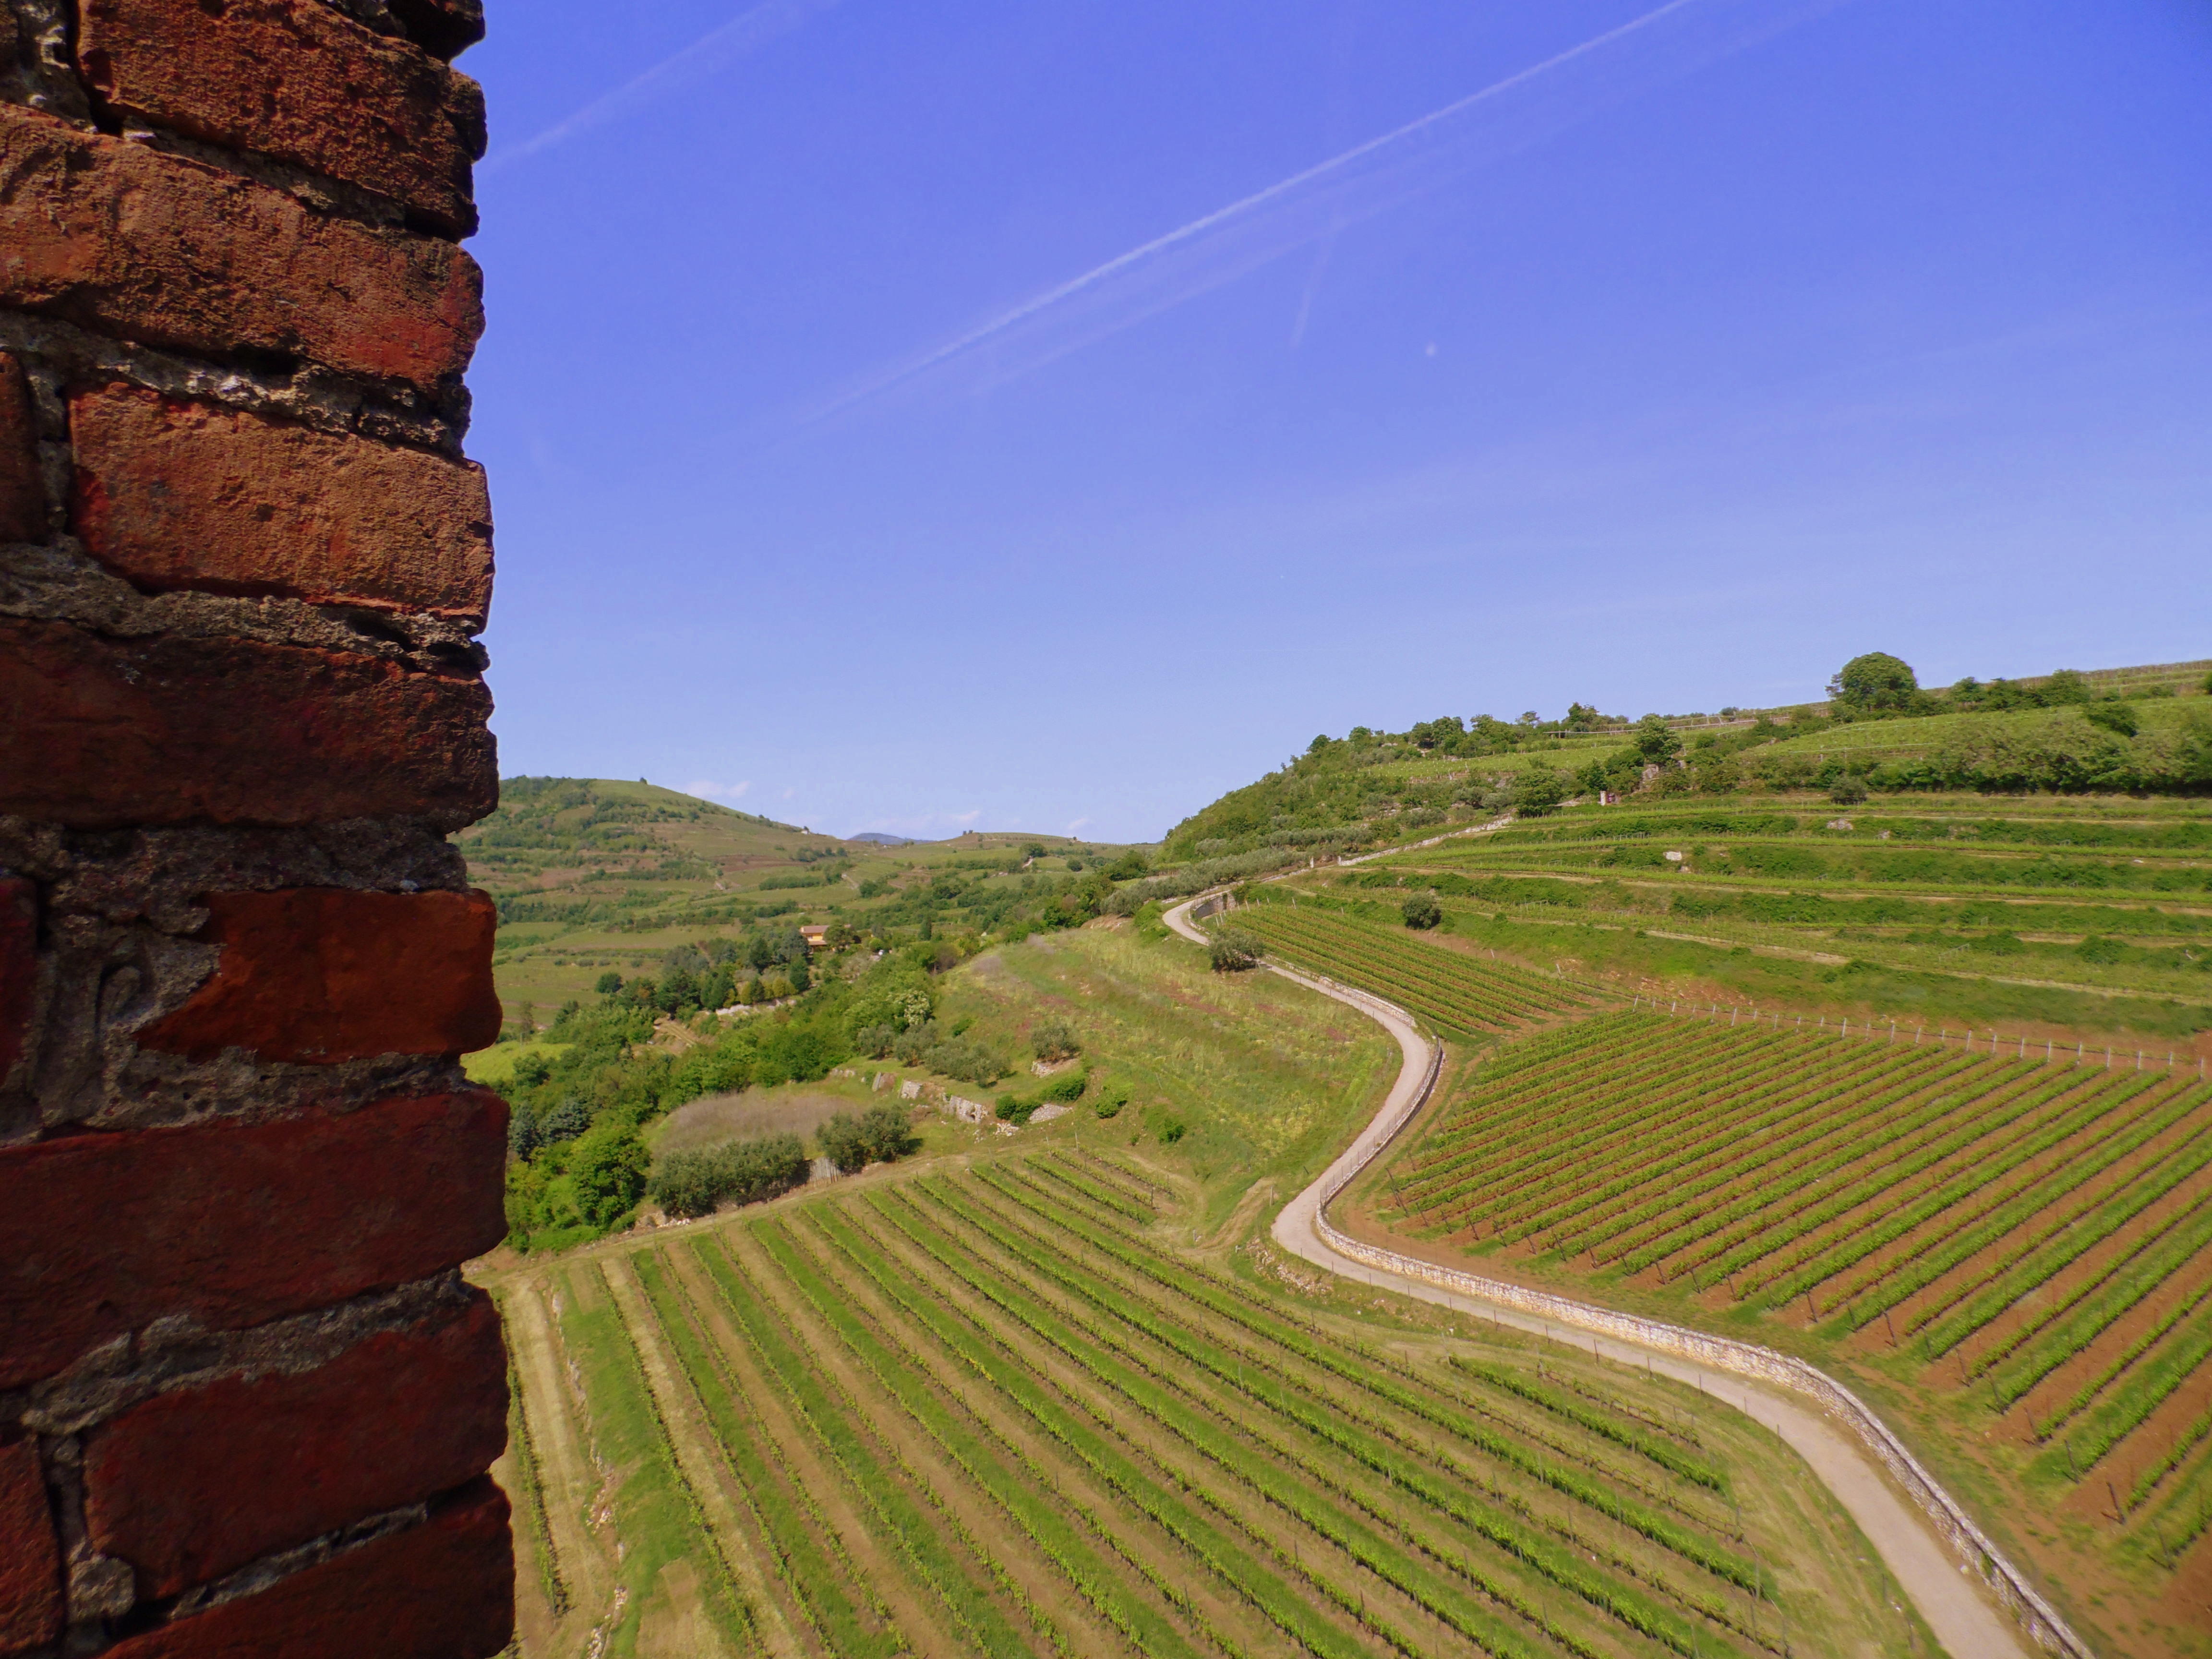 From Soave Castle: what a view!